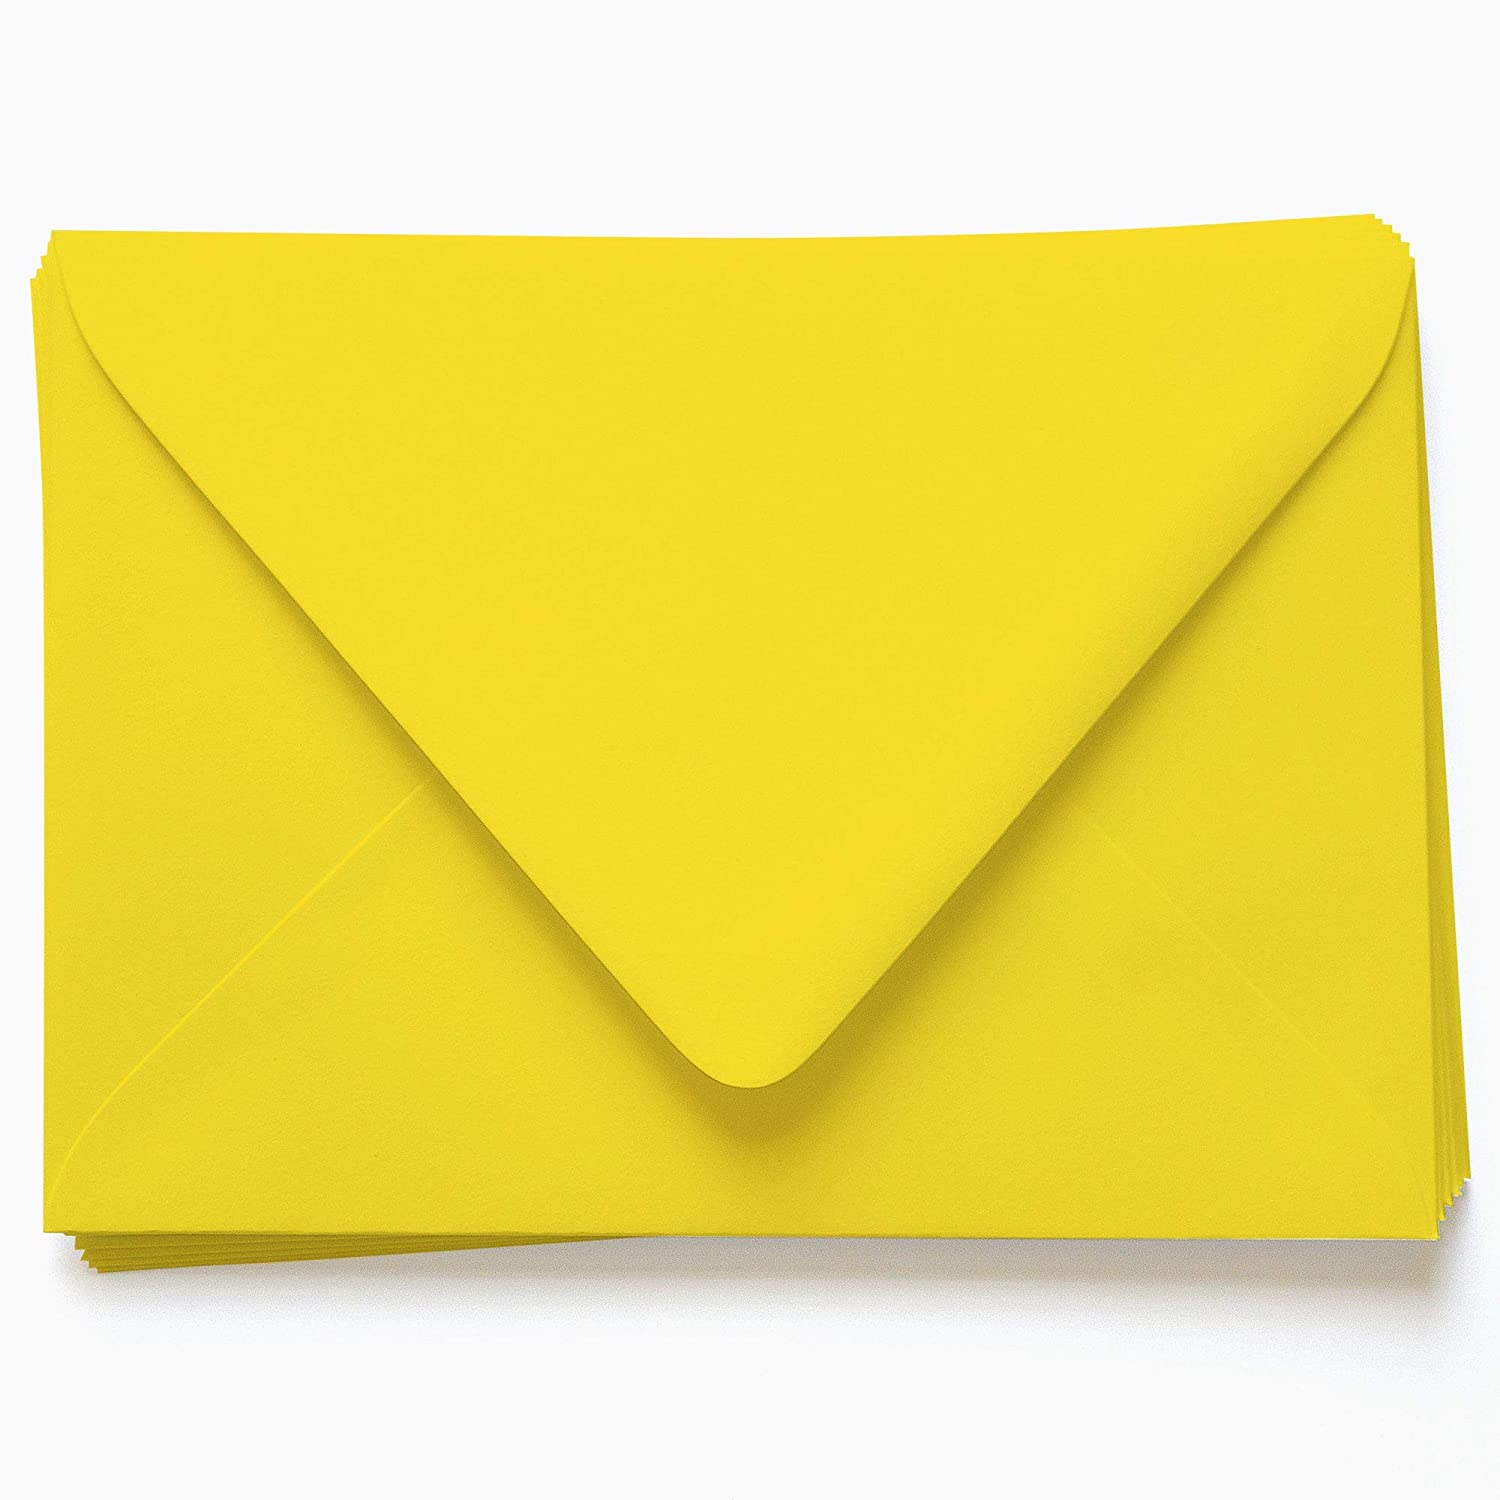 A1 Gmund Colors Matt Canary Yellow Envelopes - Euro Flap, 68T, 25 Pack